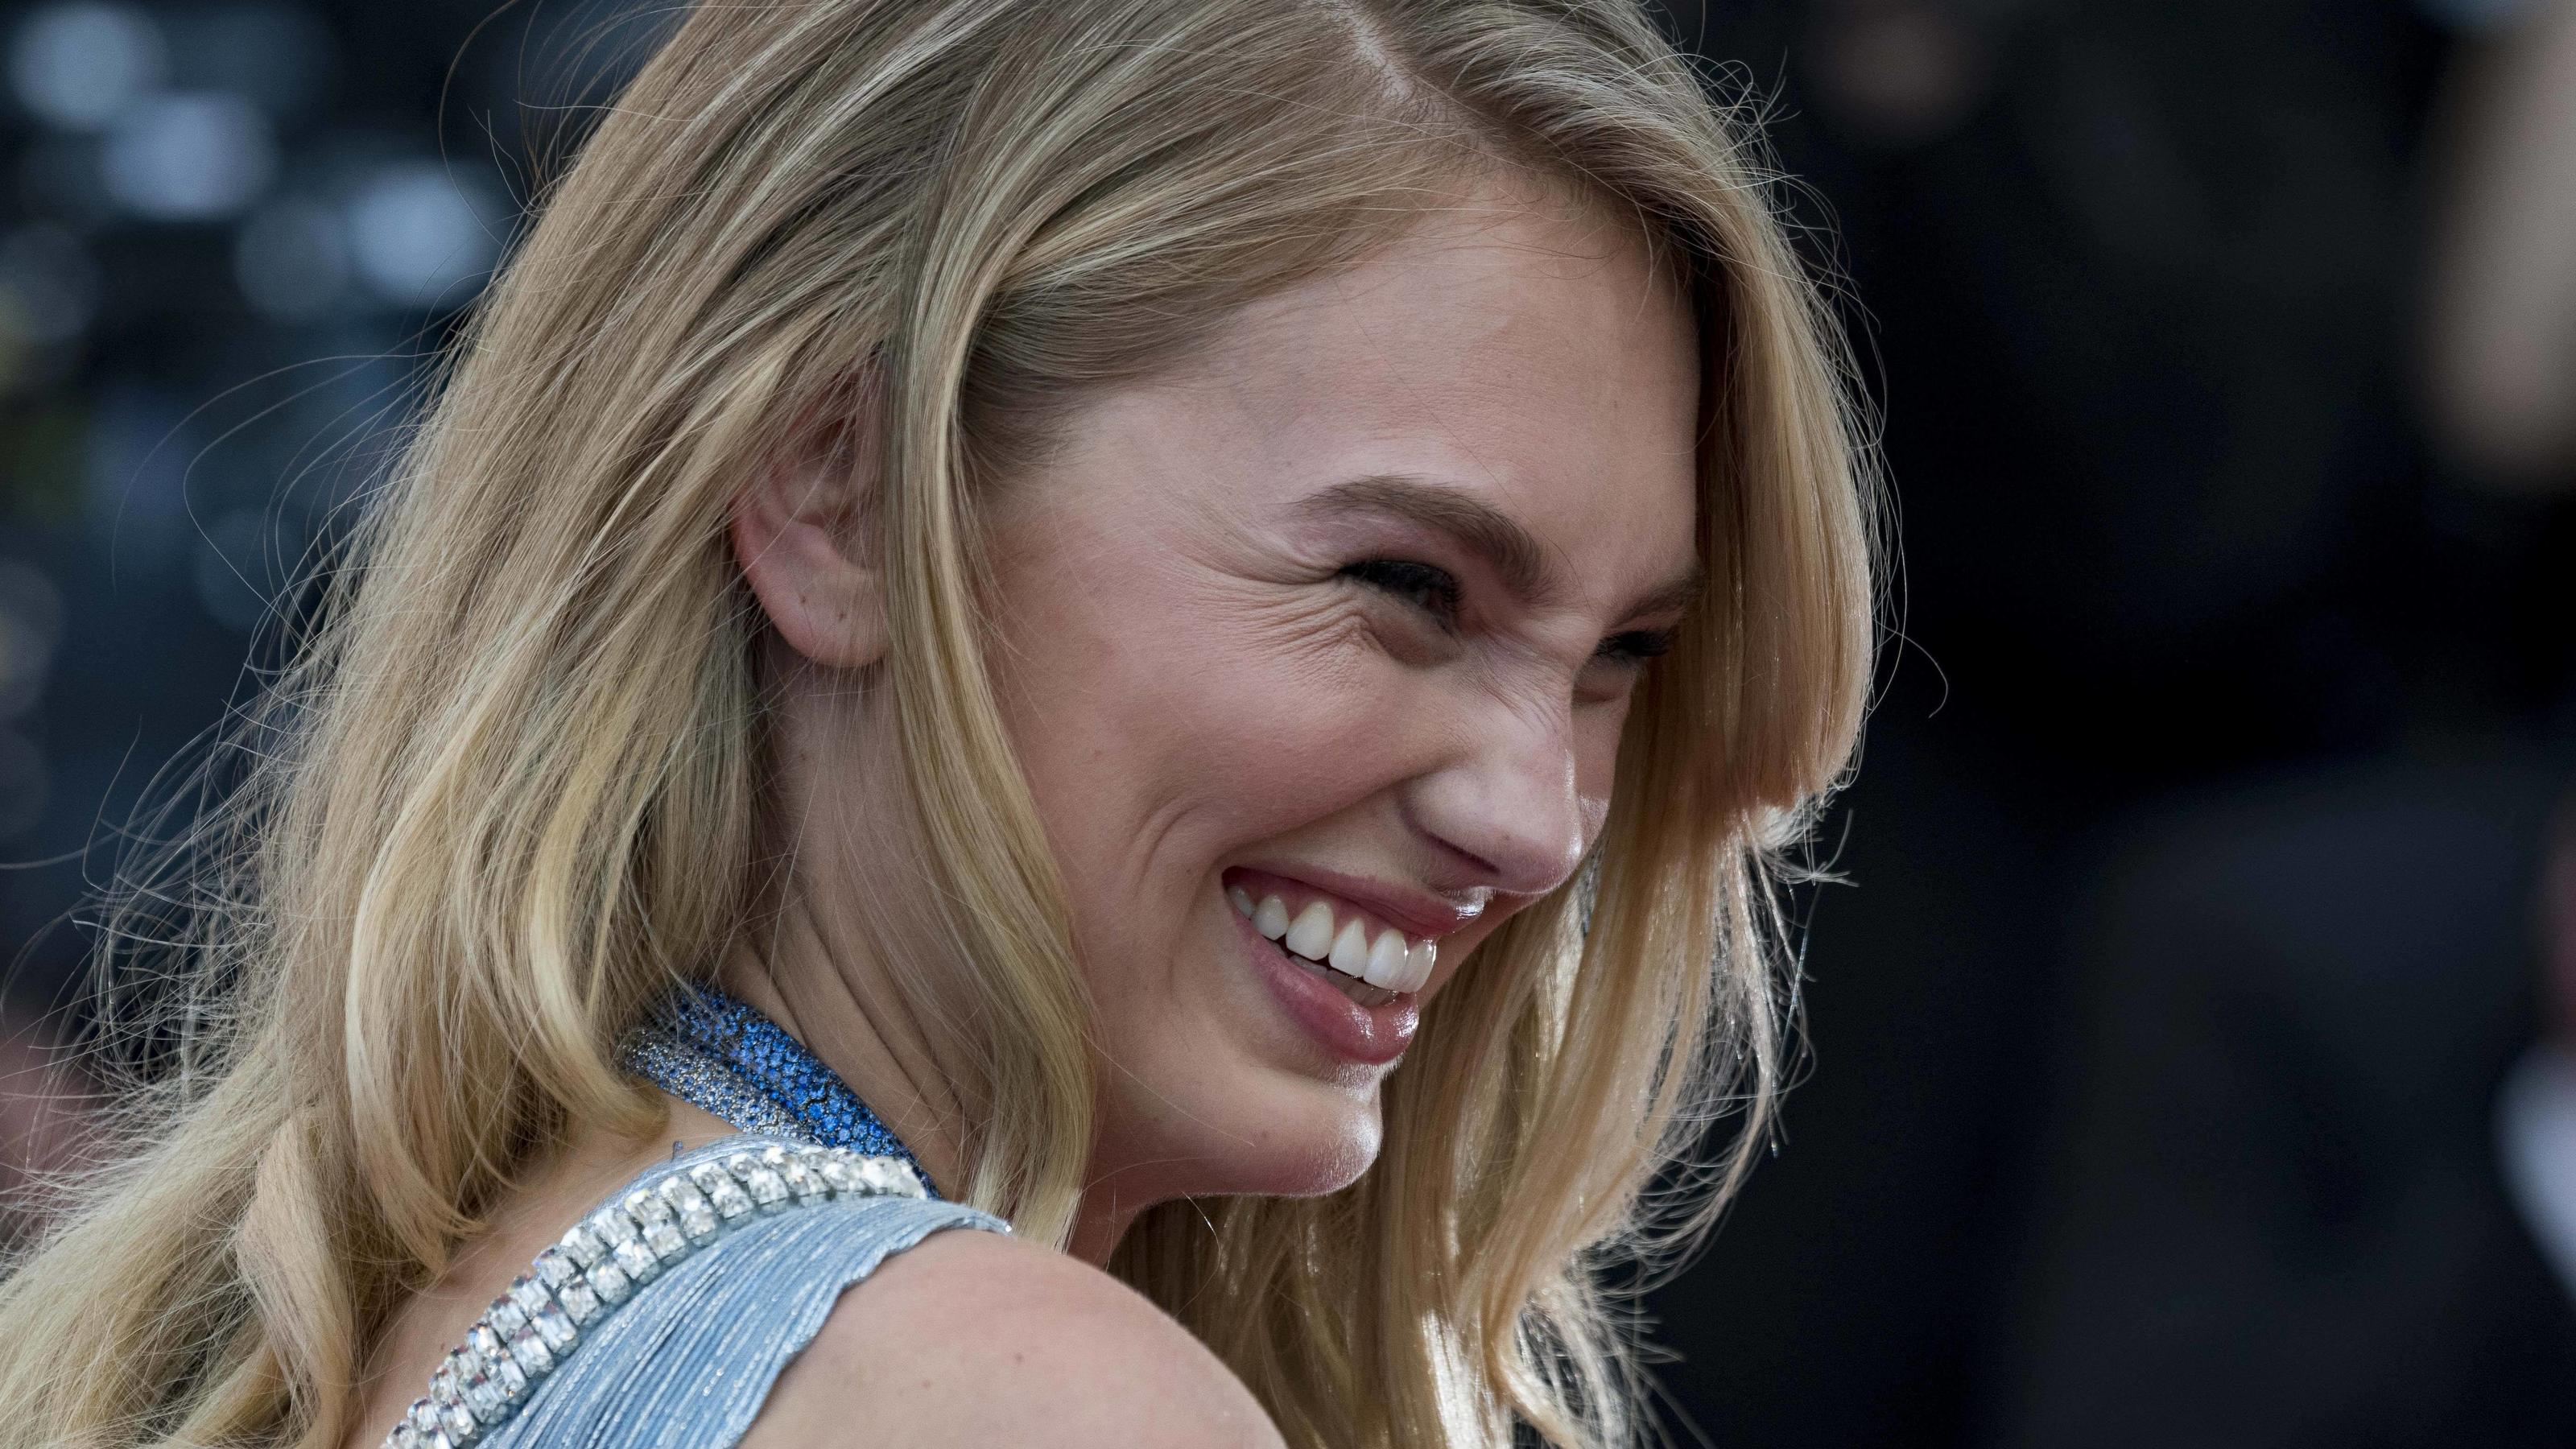 Romee Strijd CINEMA : 71 eme Festival de Cannes - Tapis rouge du film Everybody Knows Todos Lo Saben - 08/05/2018 NorbertScanella/Panoramic PUBLICATIONxNOTxINxFRAxITAxBEL